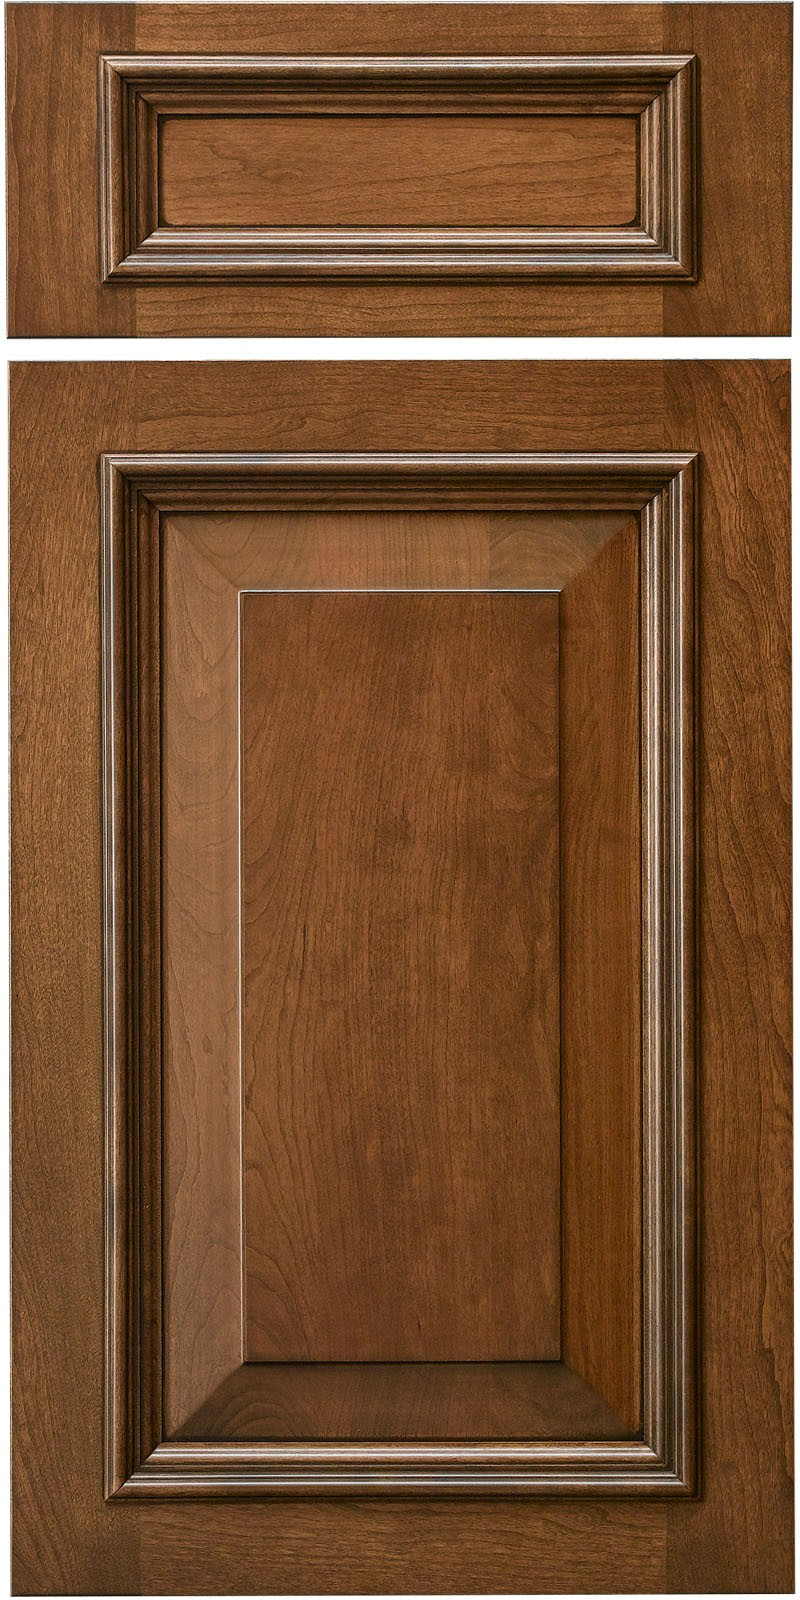 Churchill Applied Moulding Construction Cabinet Doors Drawer Fronts Products